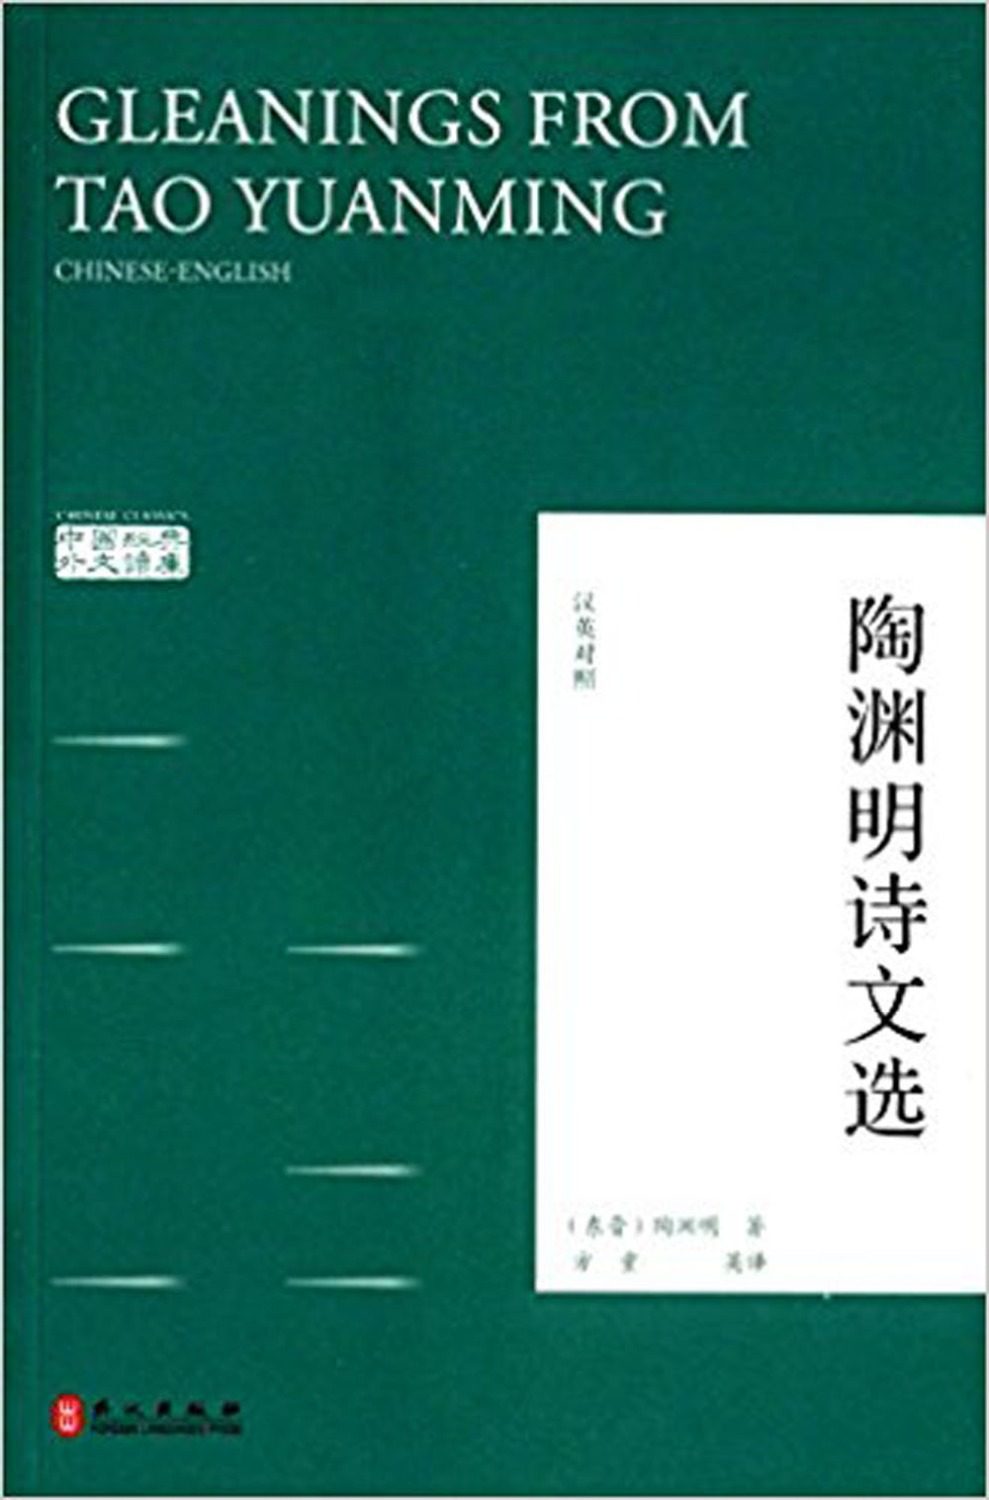 Chinese classics: Gleanings from Tao Yuanming - bilingualChinese classics: Gleanings from Tao Yuanming - bilingual